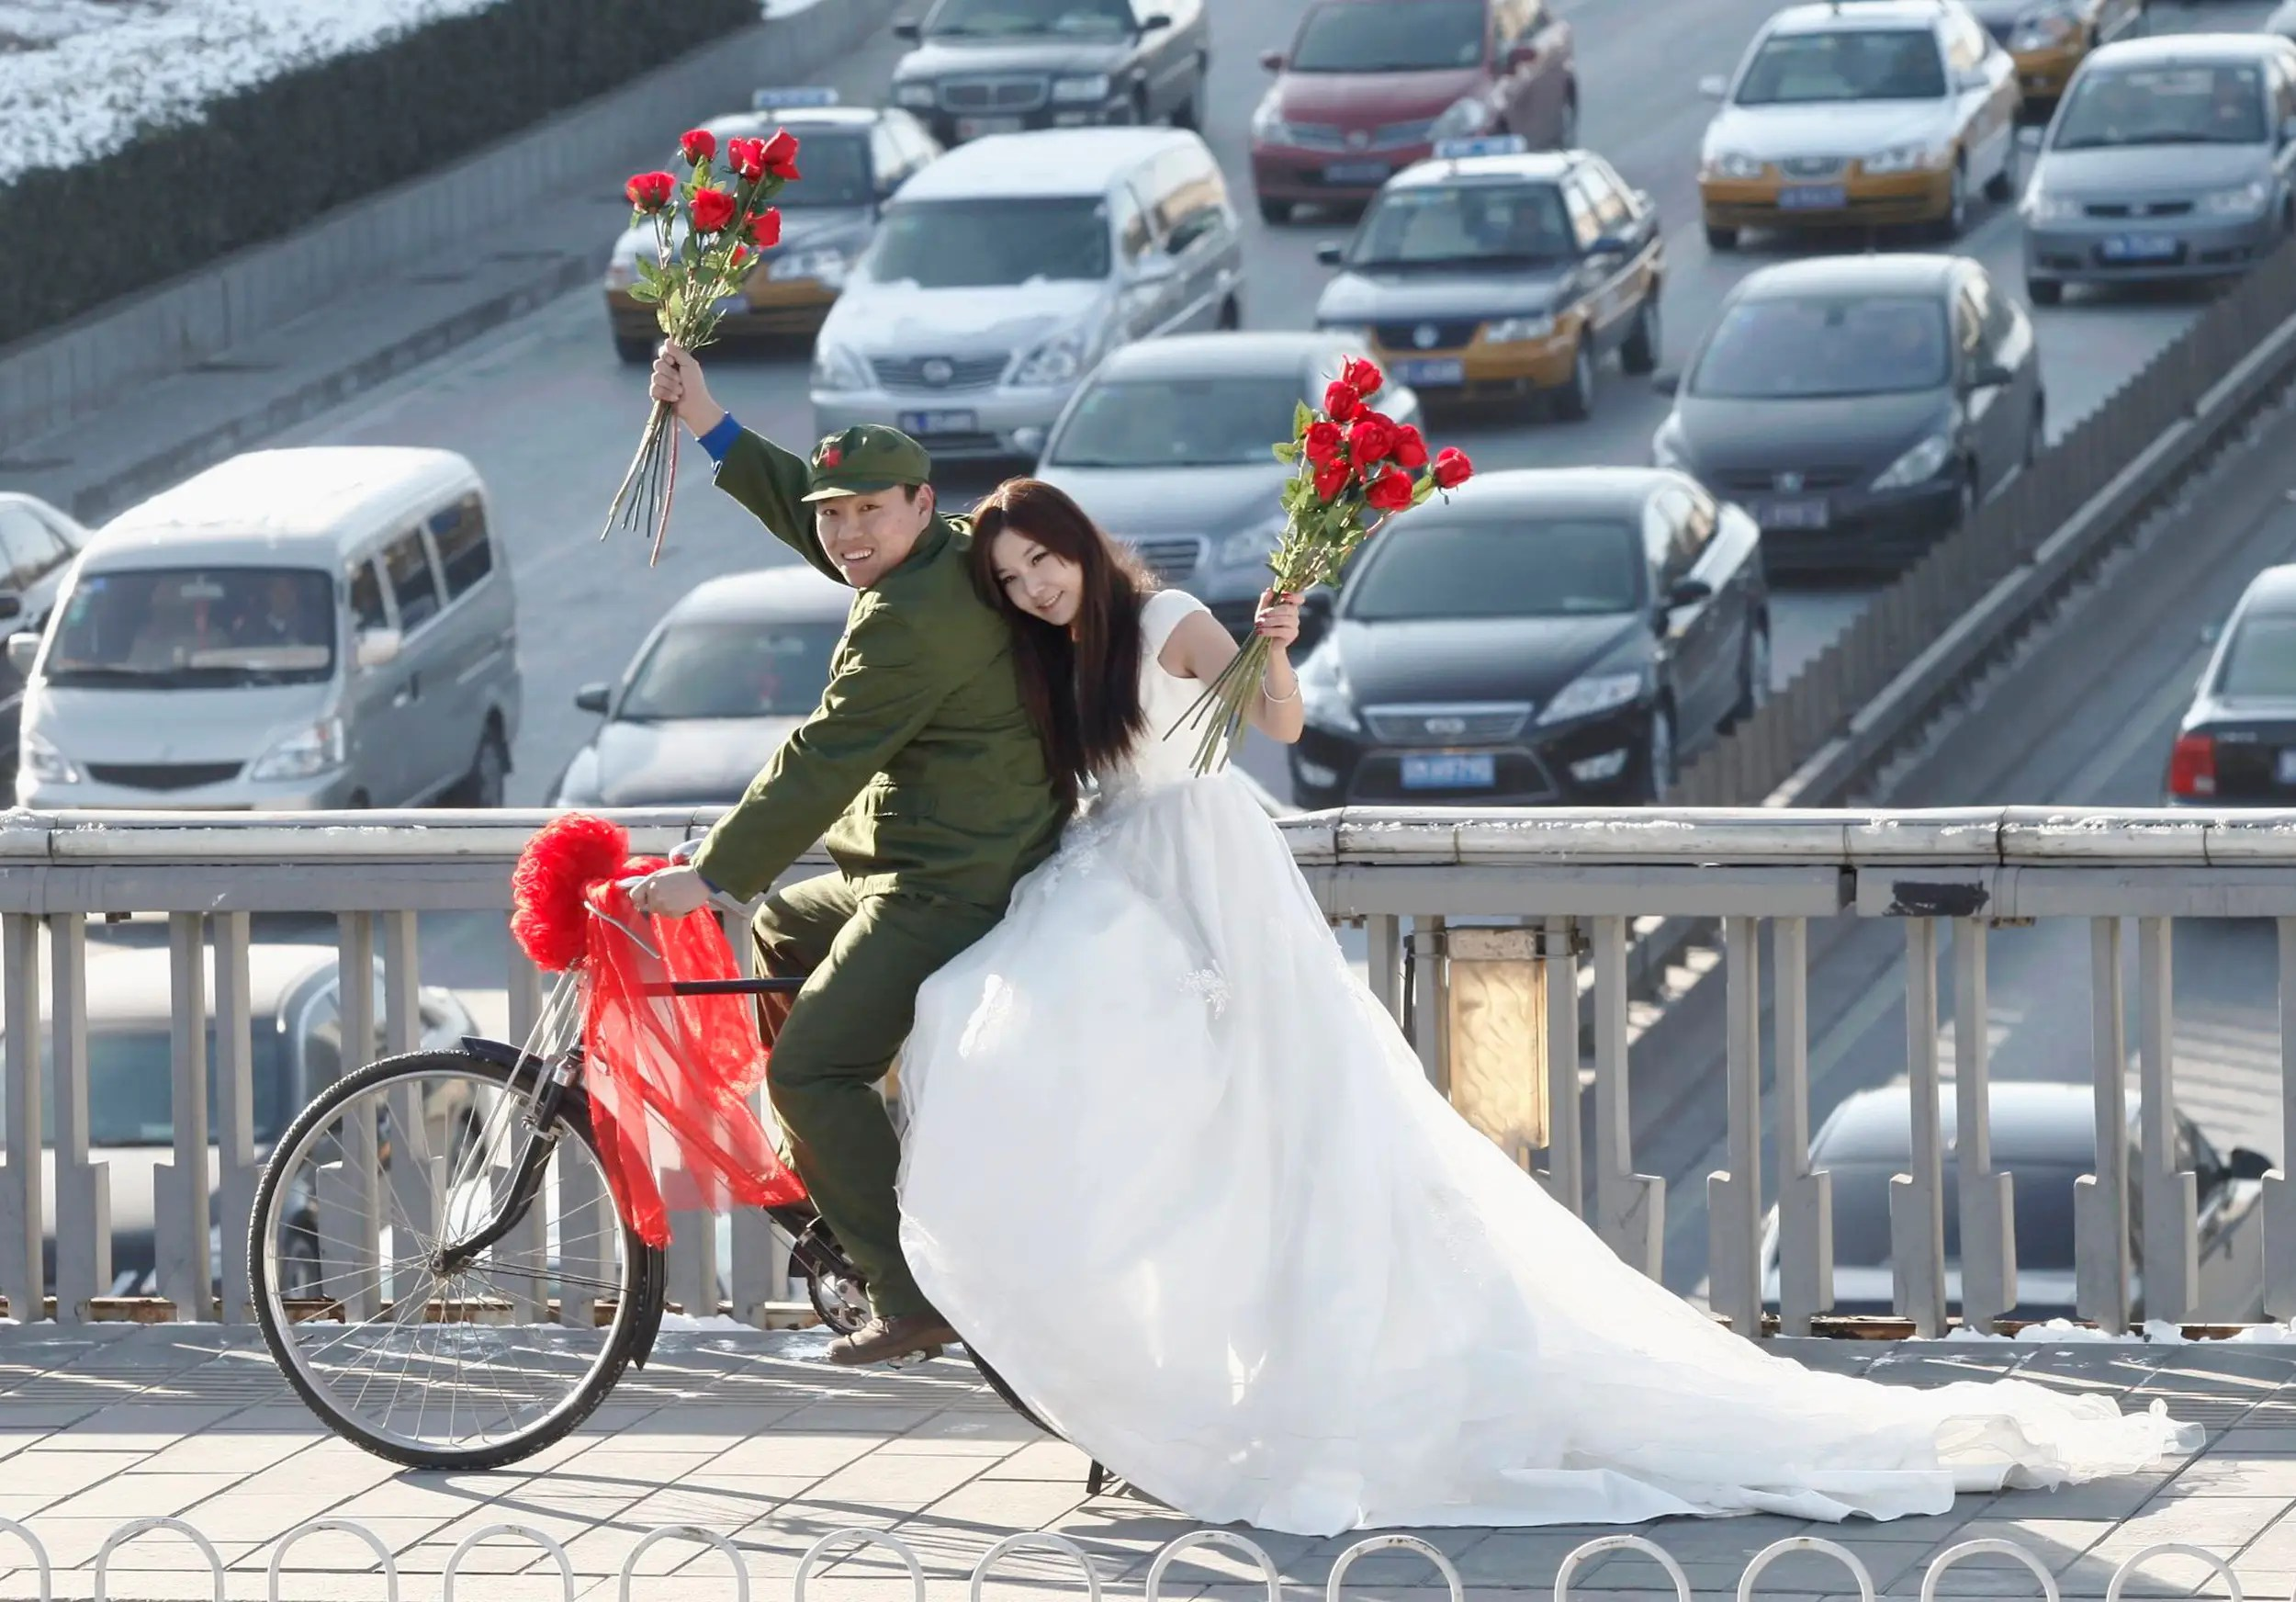 An engaged couple poses on a pedestrian bridge on Valentine's Day in central Beijing.